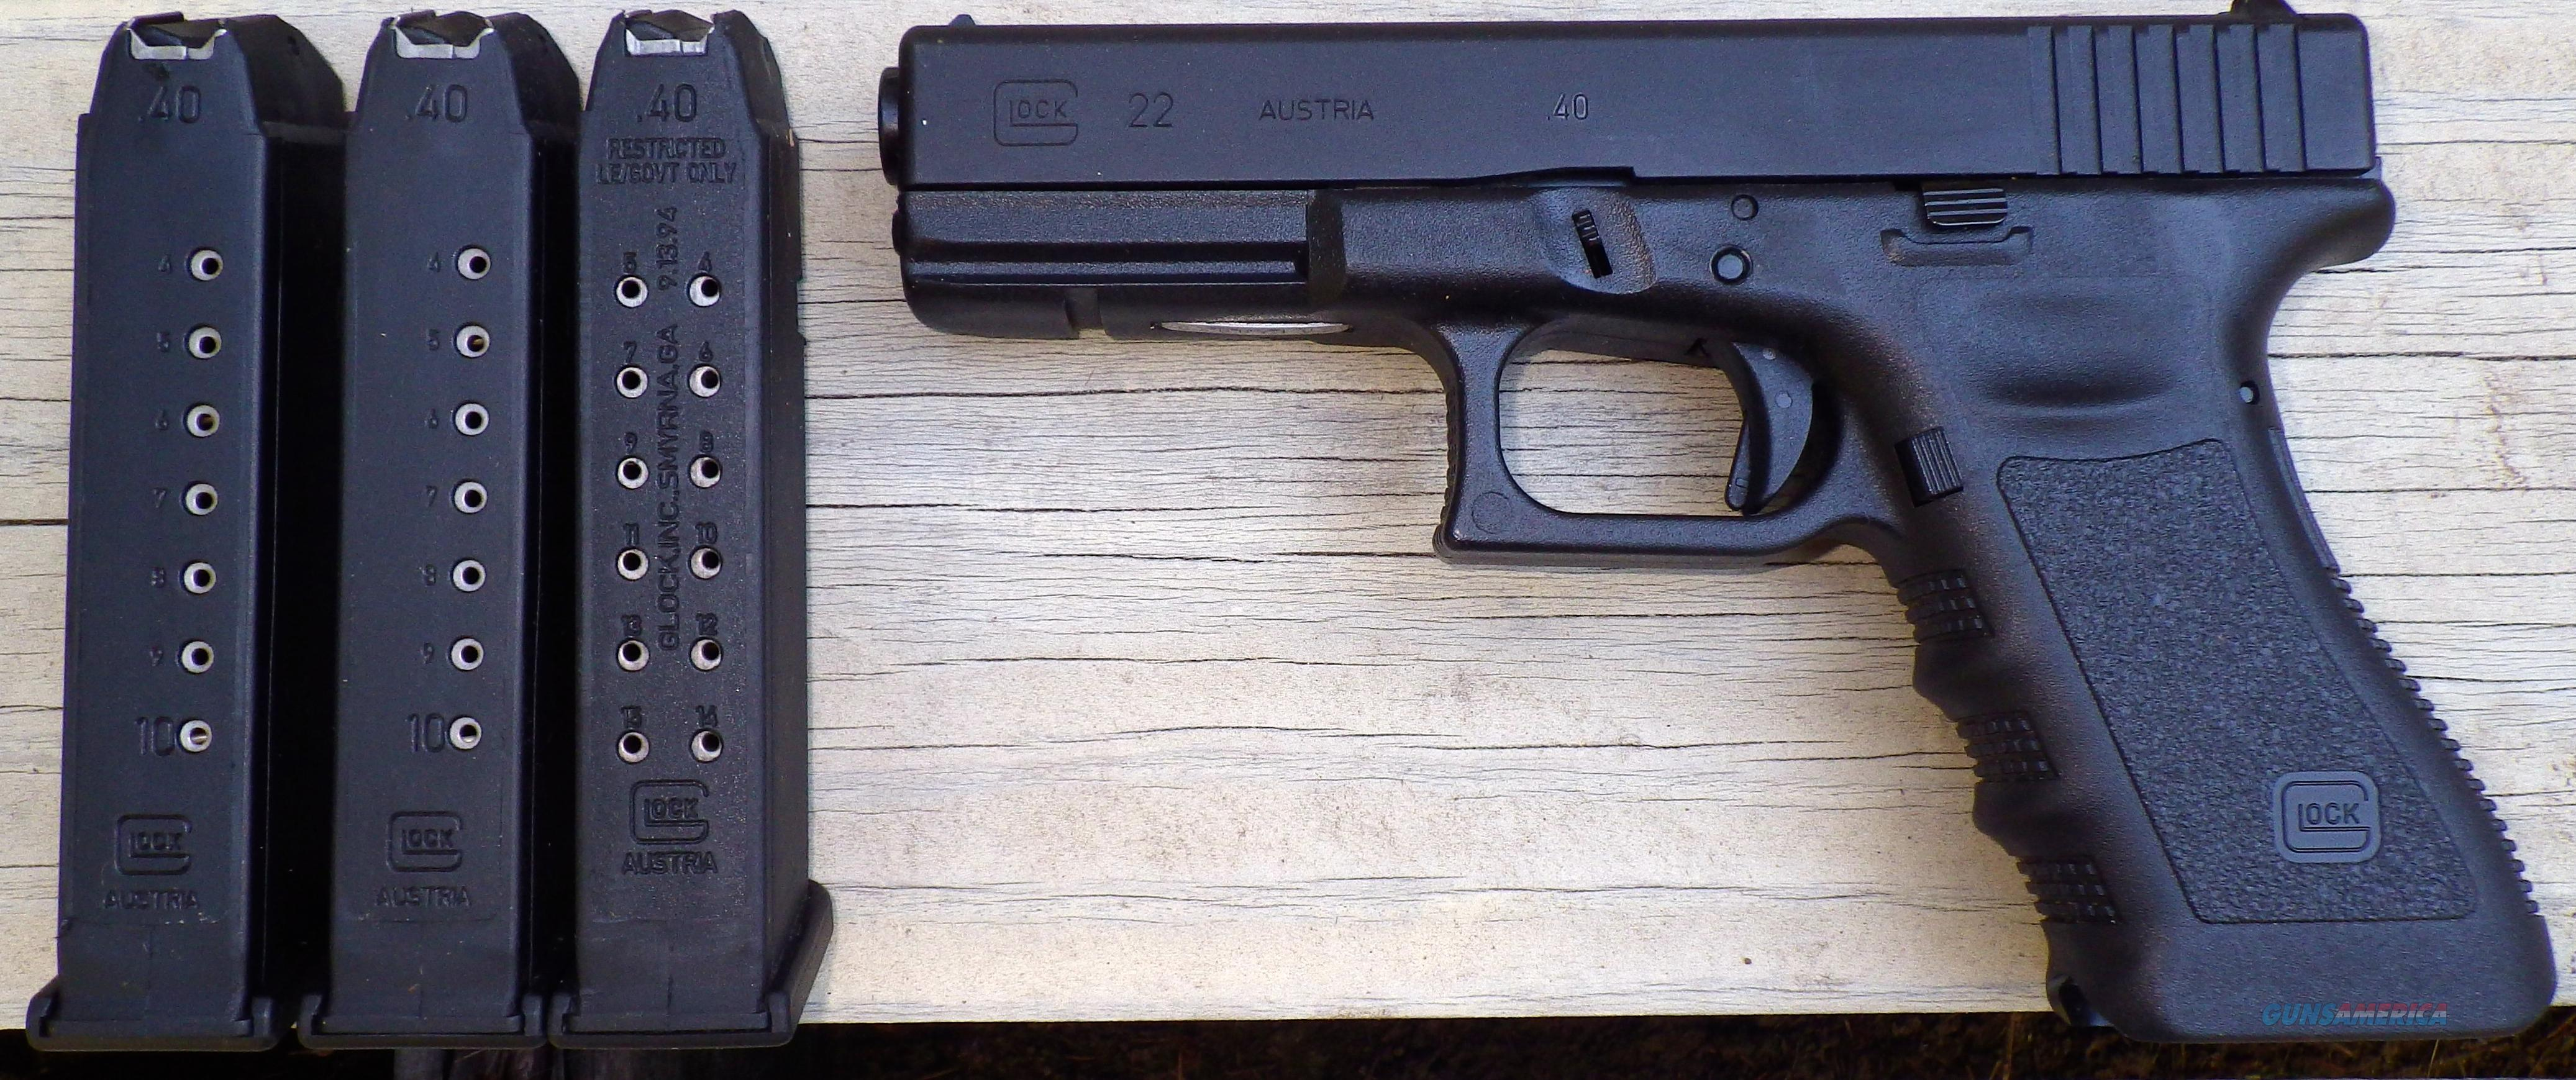 Glock .40 S&W, 3 mags, box/literature, unfired  Guns > Pistols > Glock Pistols > 22